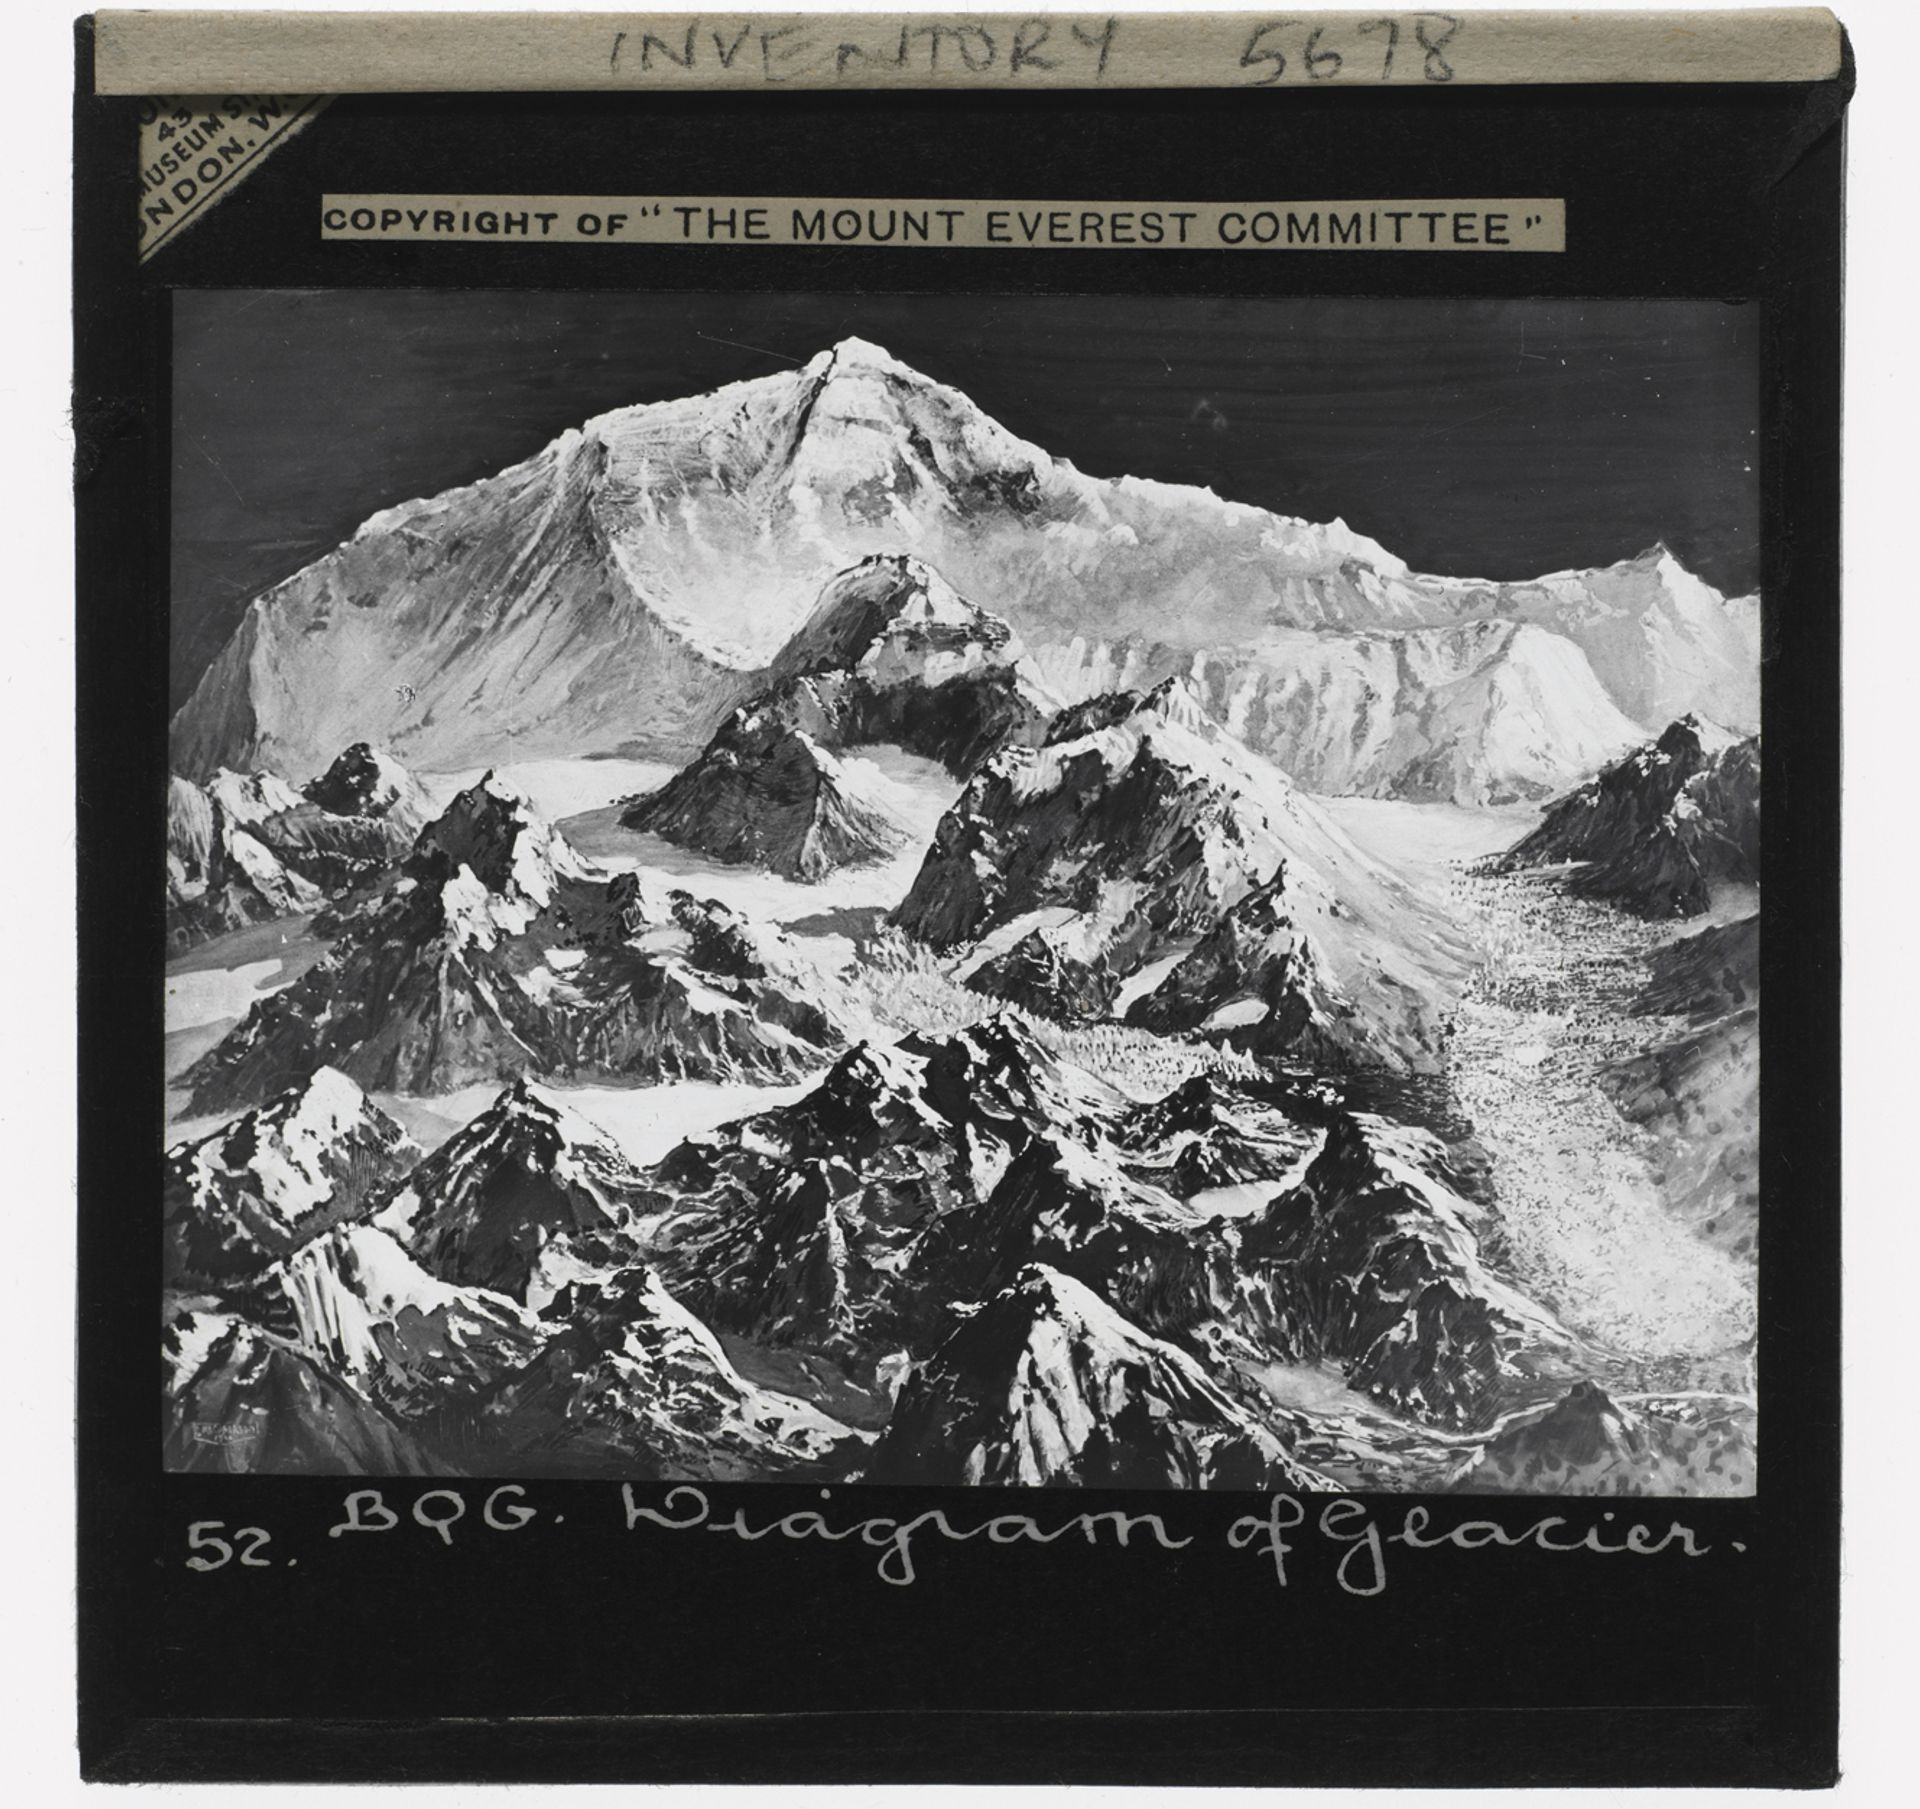 A magic-lantern slide from a 1921 expedition to Mount Everest © The RPS Collection at the V&A